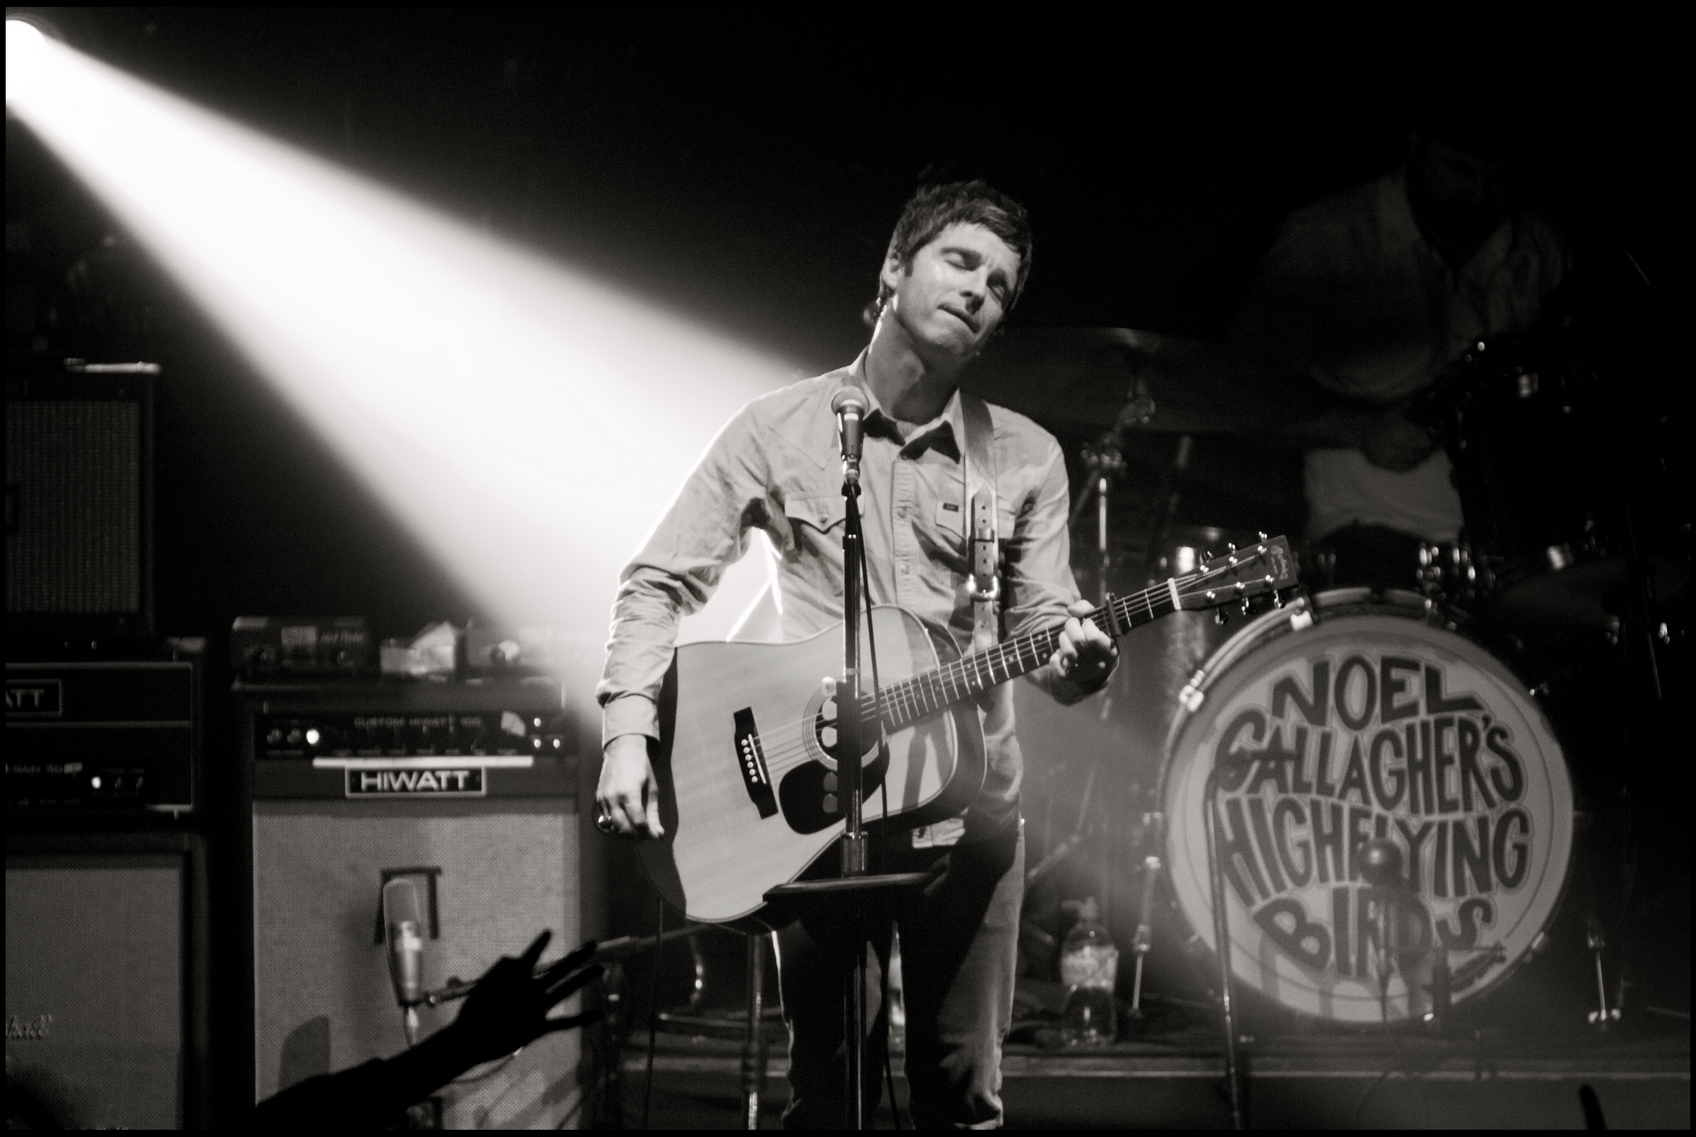 Noel Gallagher's High Flying Birds Live Photo 3 (Jill Furmanovsky/rockarchive.com)